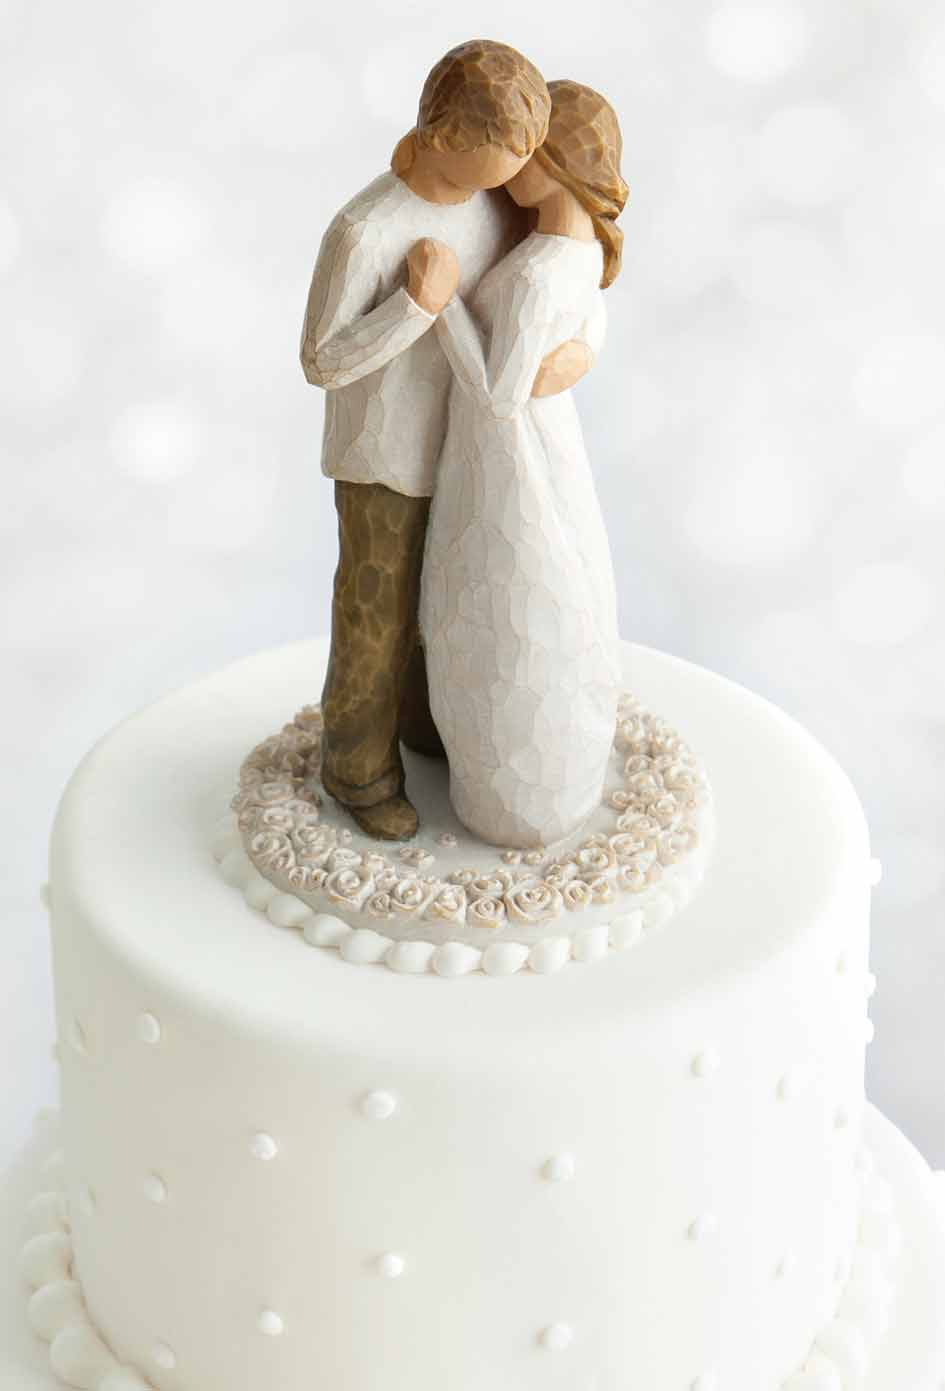 Hand carved figurine of cake toppers